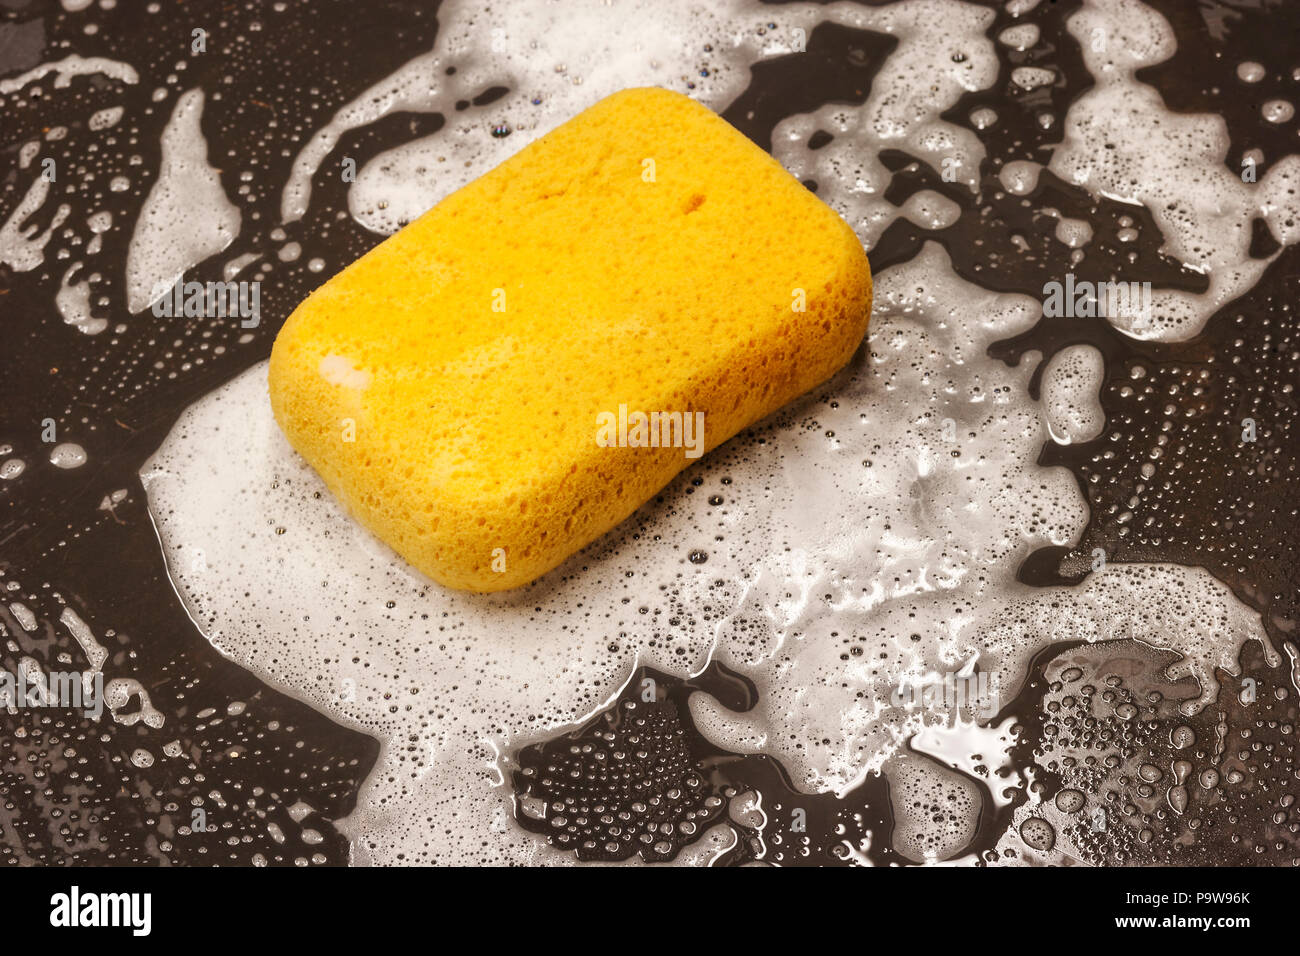 The life of a sponge sitting on a clean surface surrounded by soap suds - Stock Image